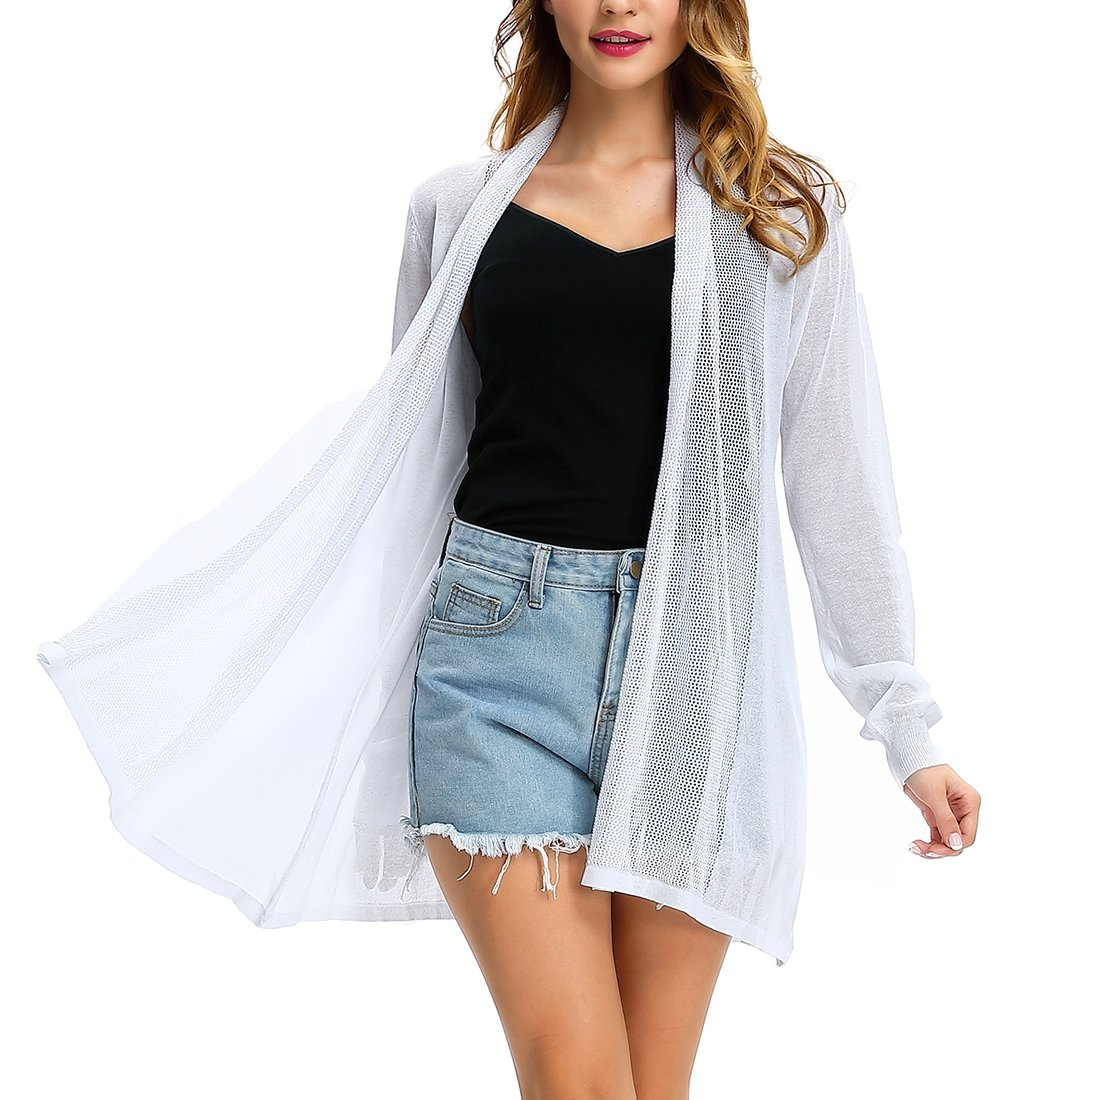 CJ Long Open Front Lightweight Breathable Cardigans Sweaters(White,XXL)